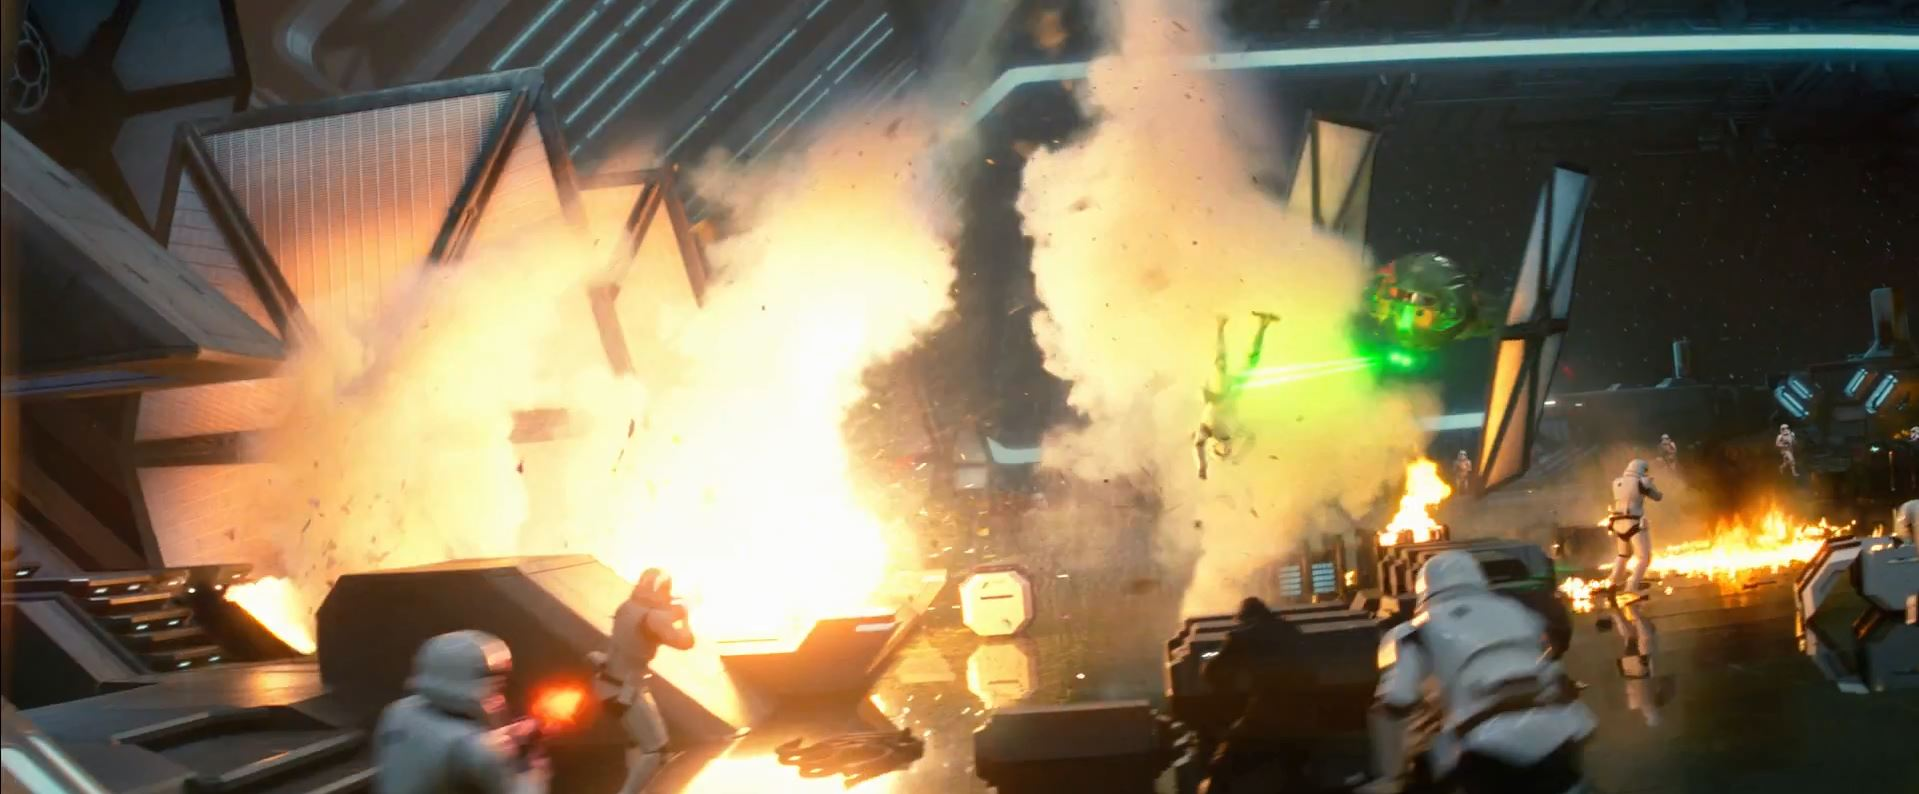 Star Destroyer hangar explosion. New Star Wars The Force Awakens Trailer Released!